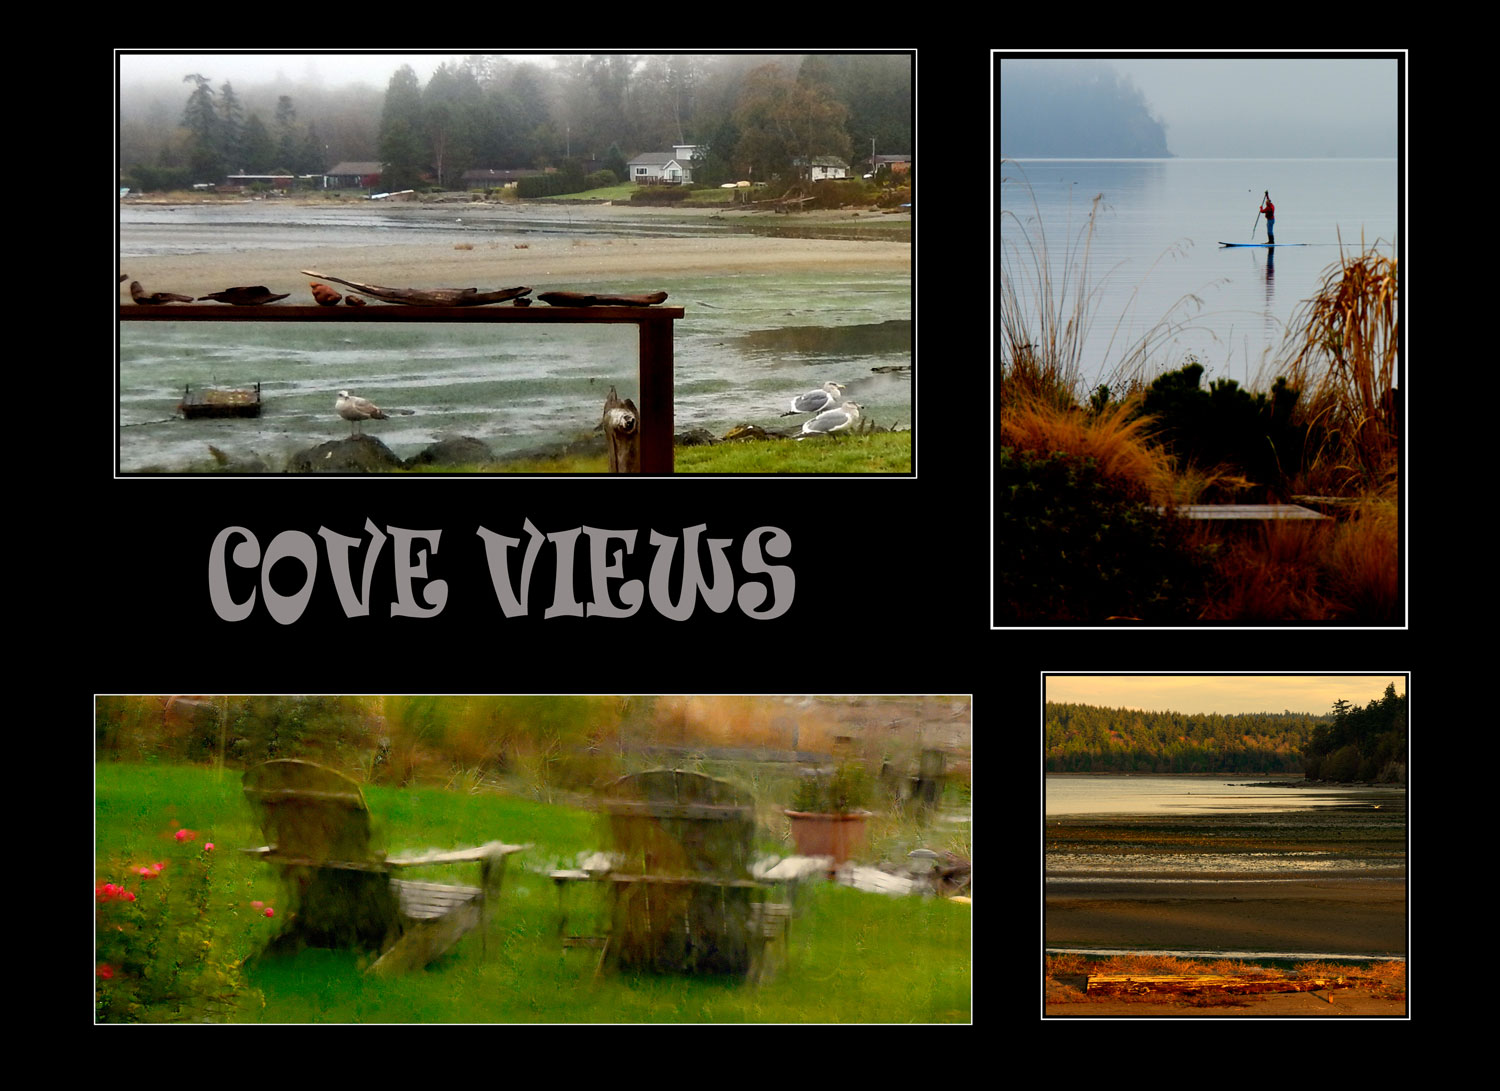 _007-014-Cove-Views-R